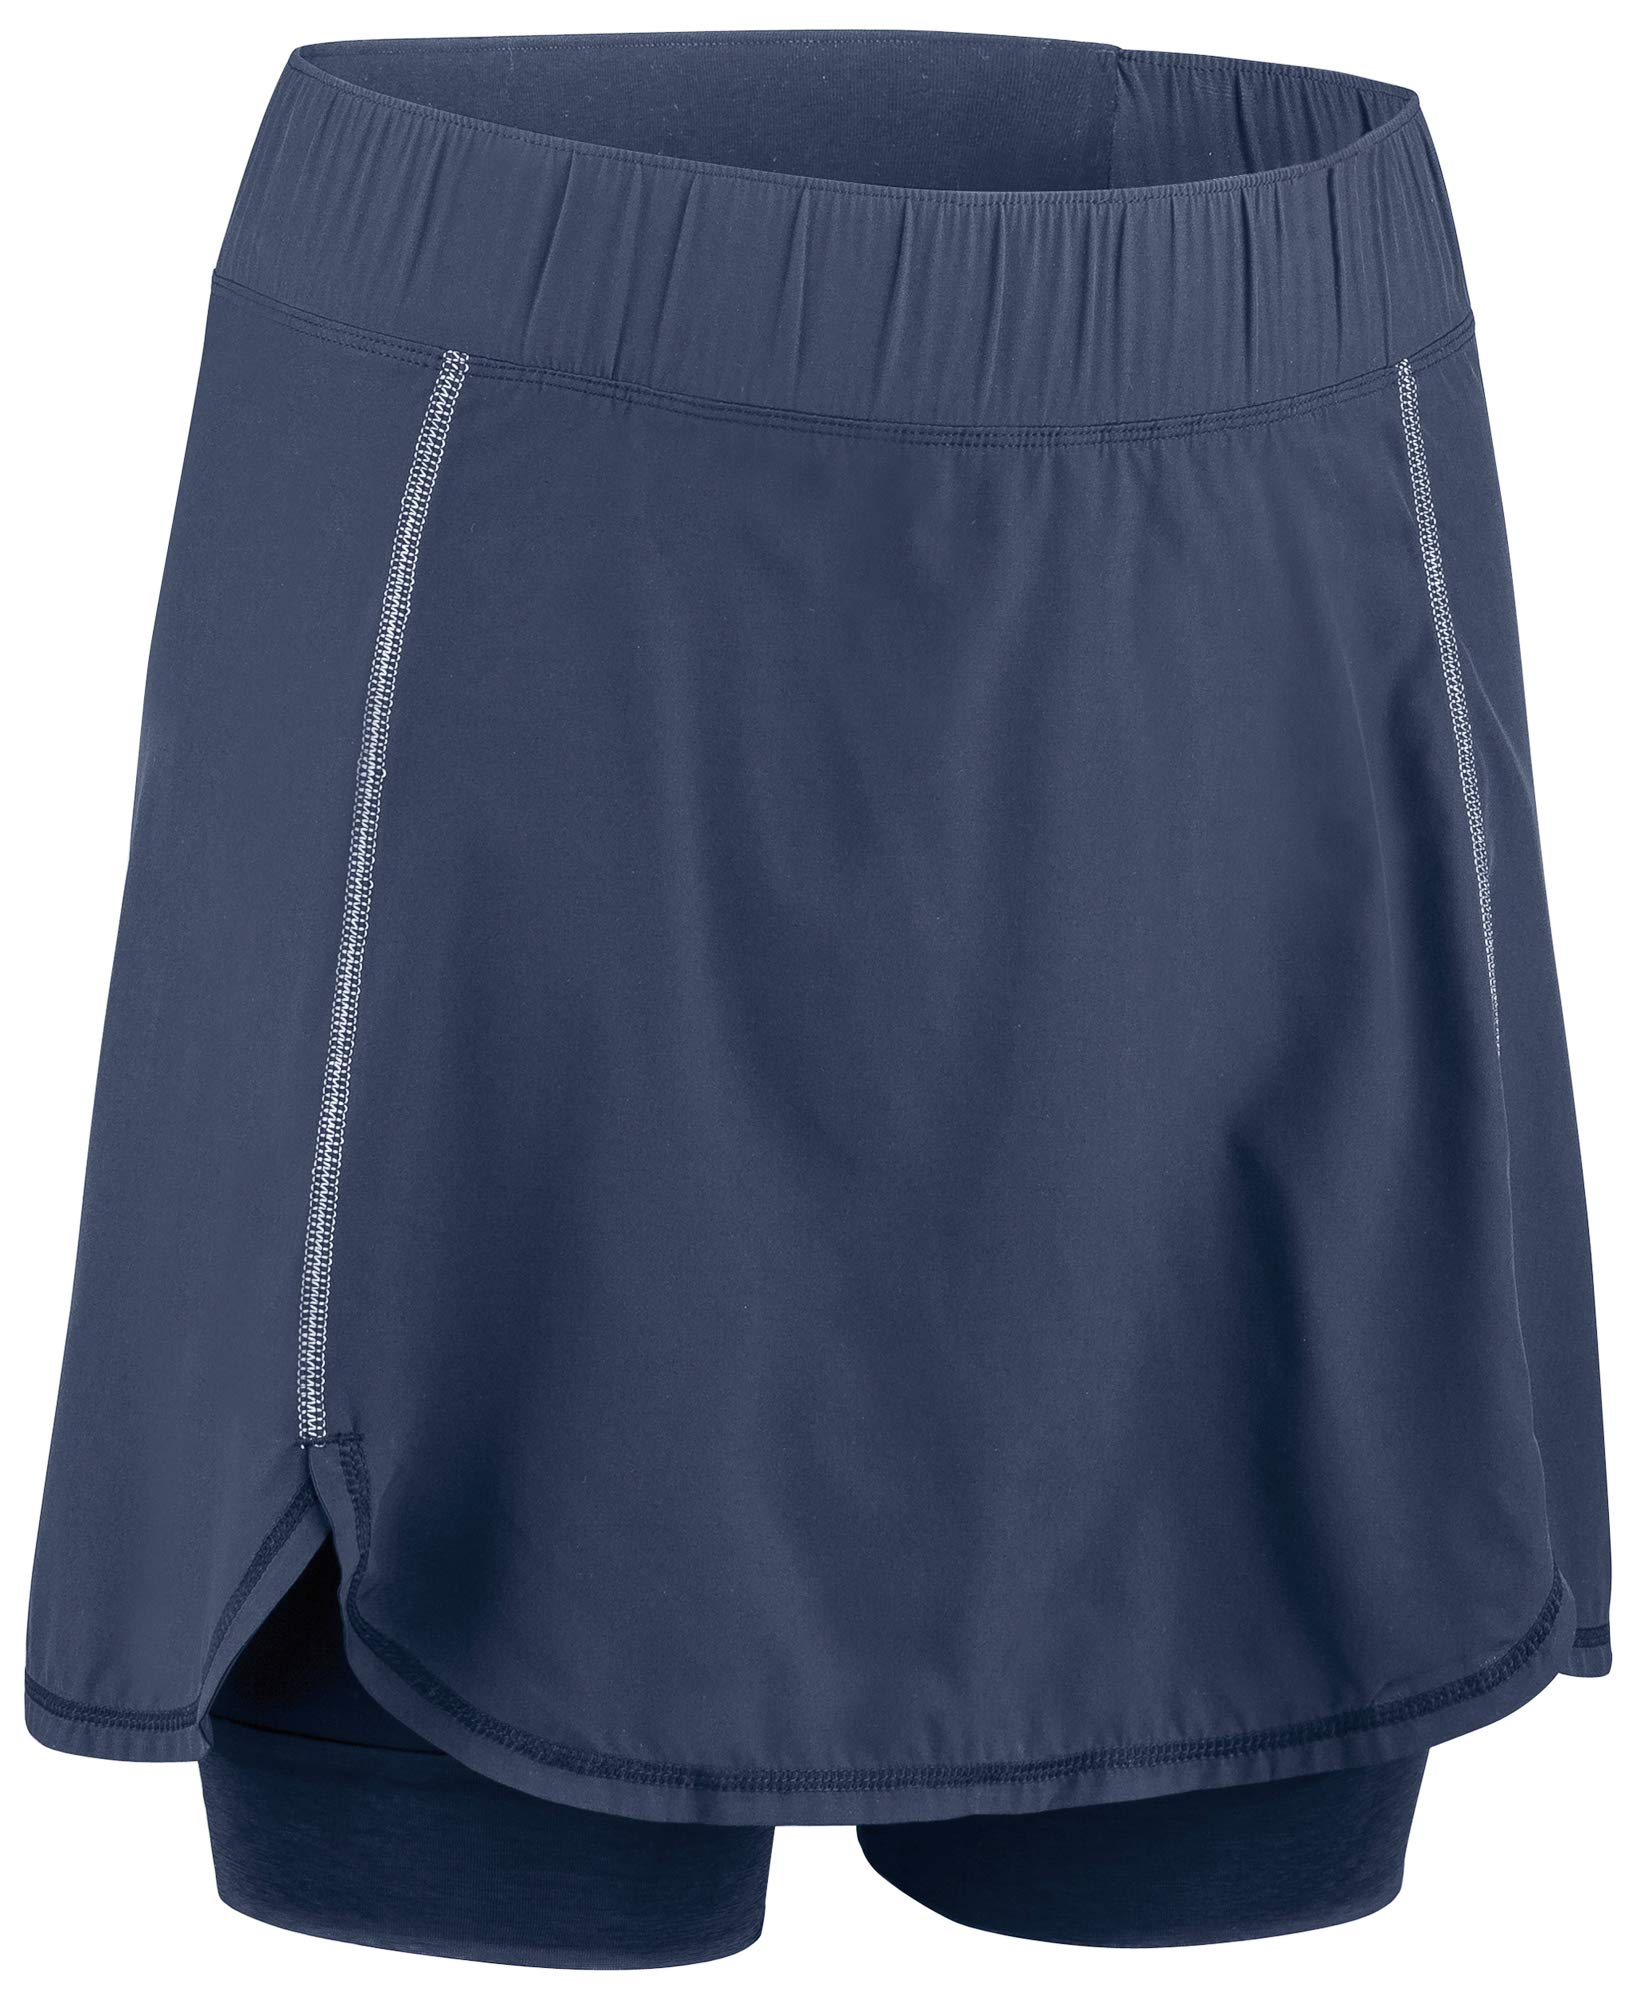 Louis Garneau Women's Urban Bike Skirt, Dark Night, Small by Louis Garneau